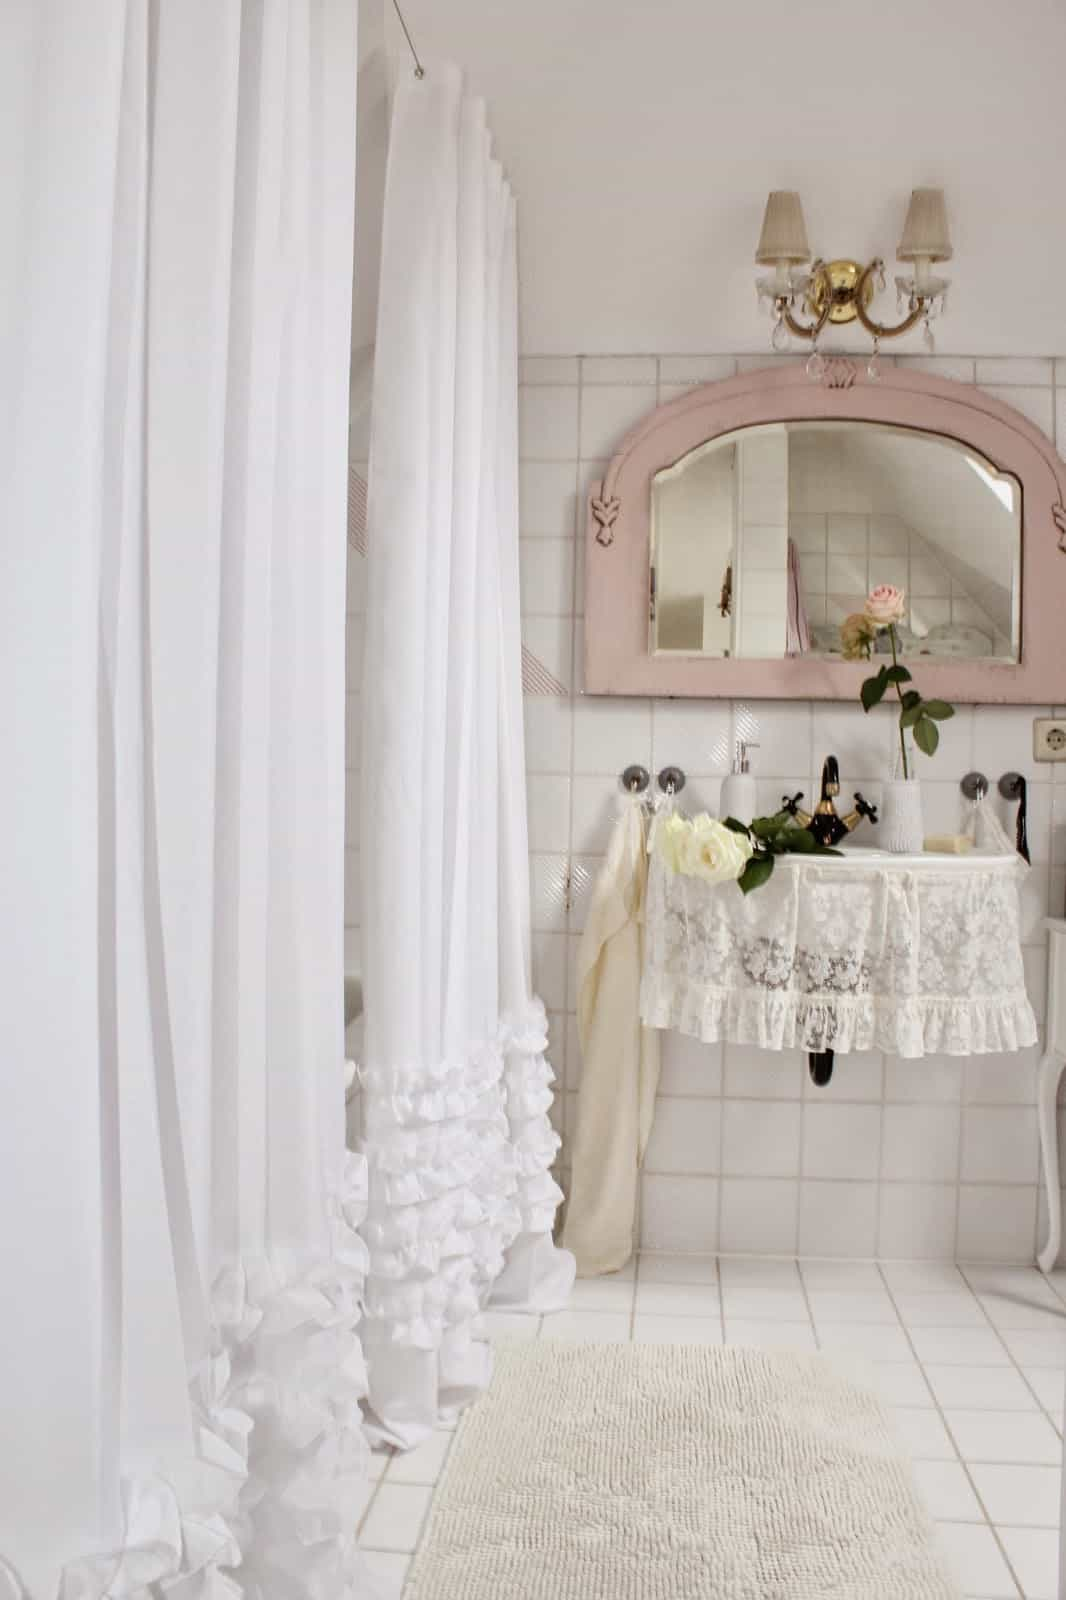 Ruffled Curtain Shabby Chic Bathroom